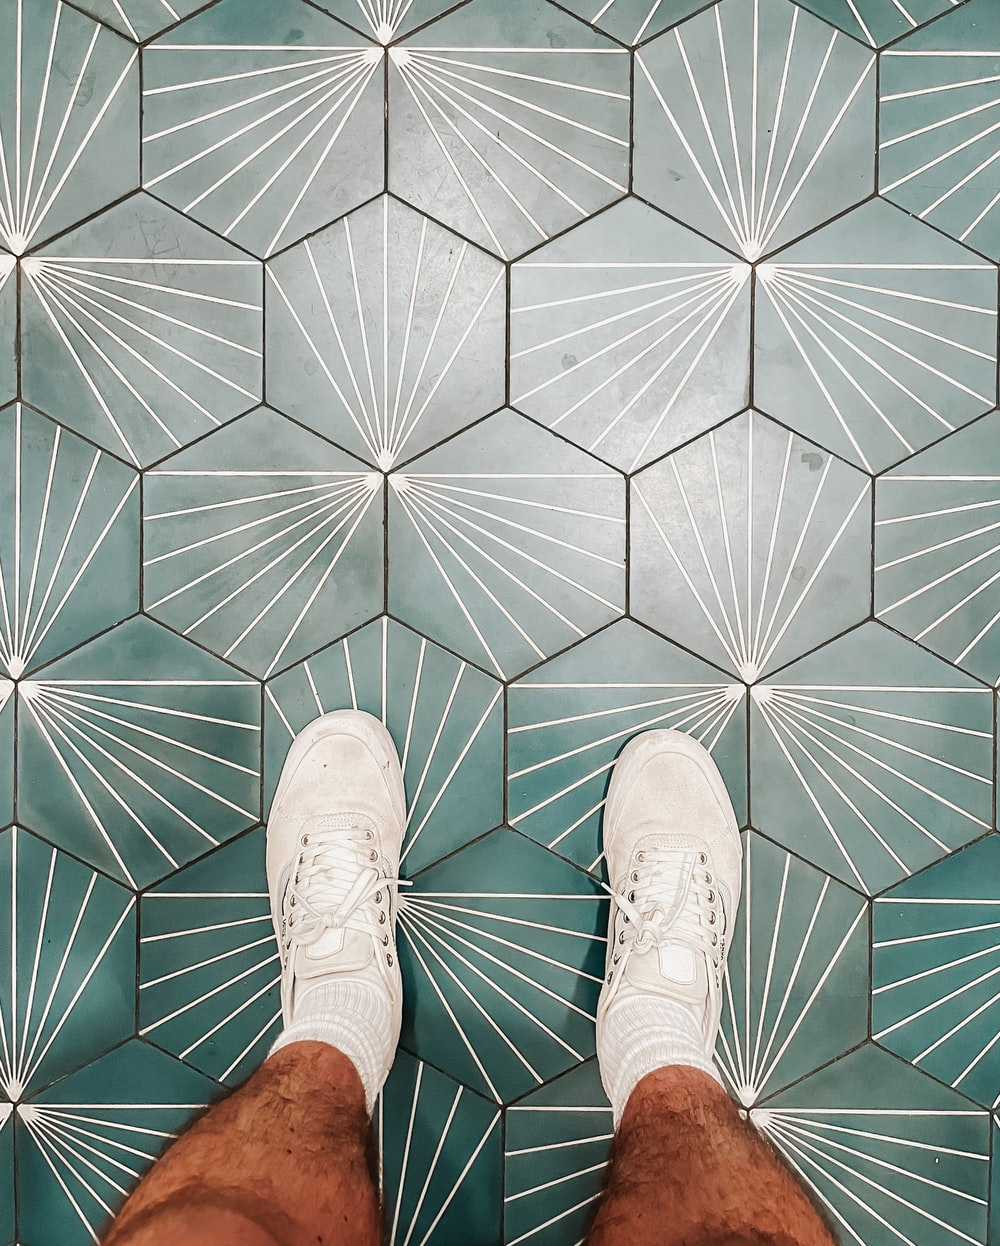 person wearing white shoes standing on white and brown floor tiles